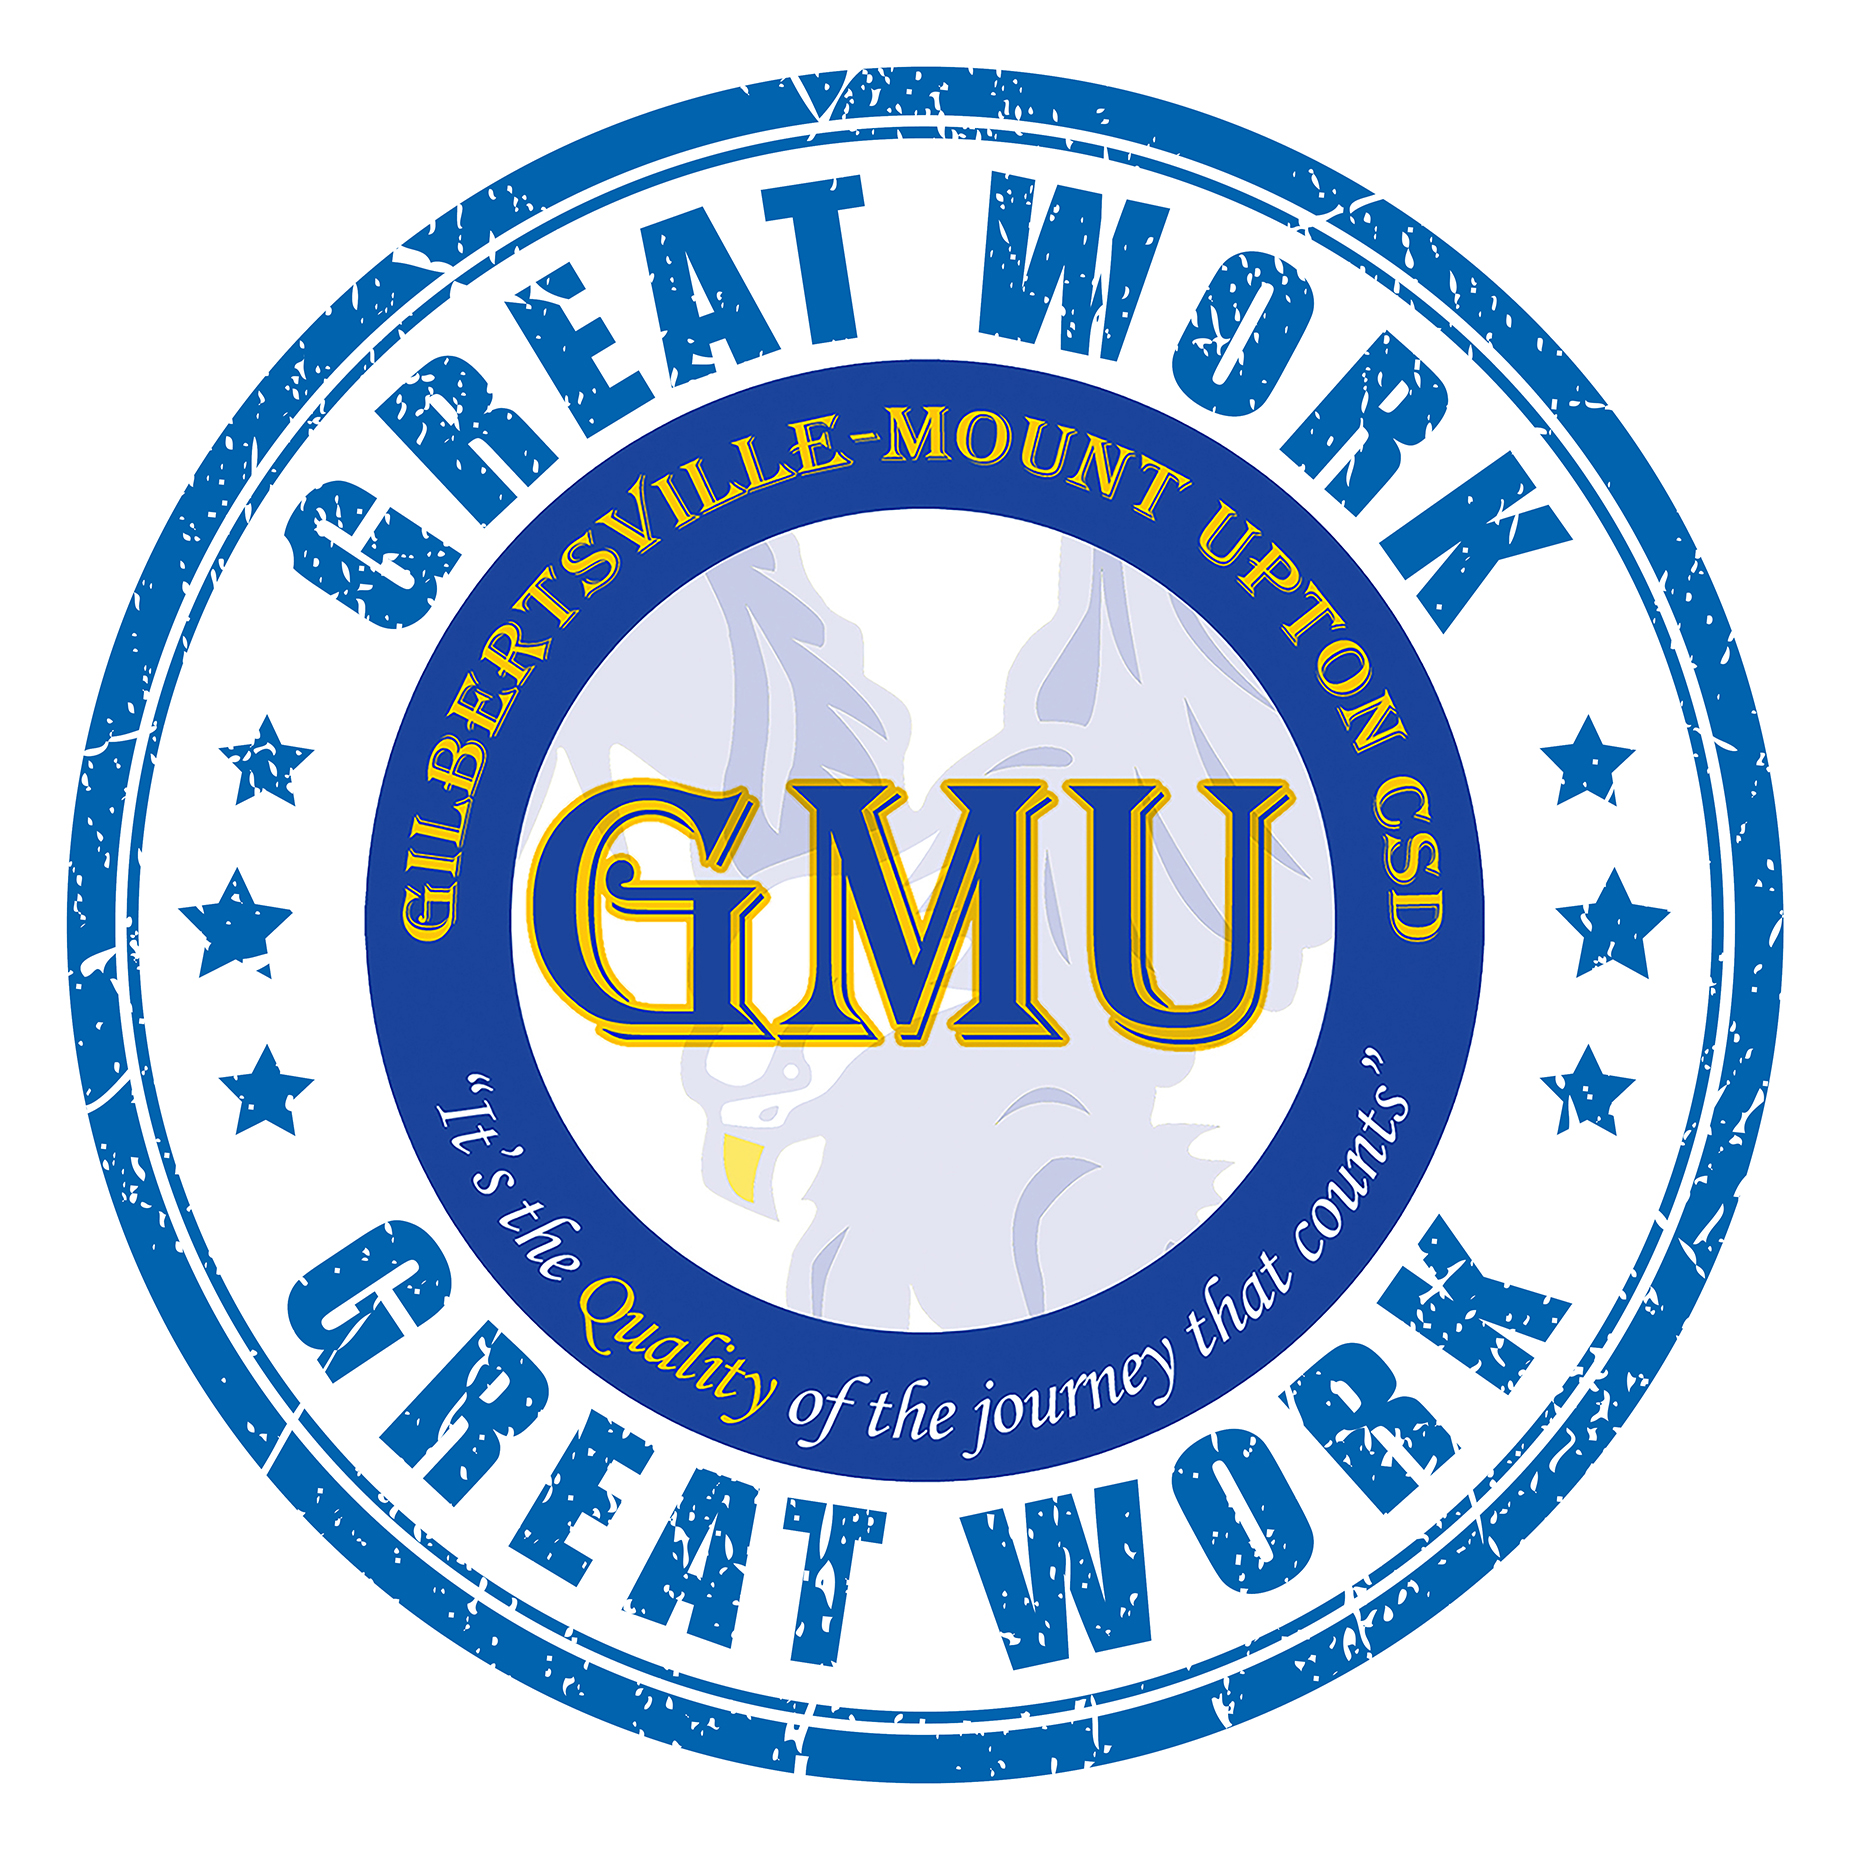 Great Work with GMU logo